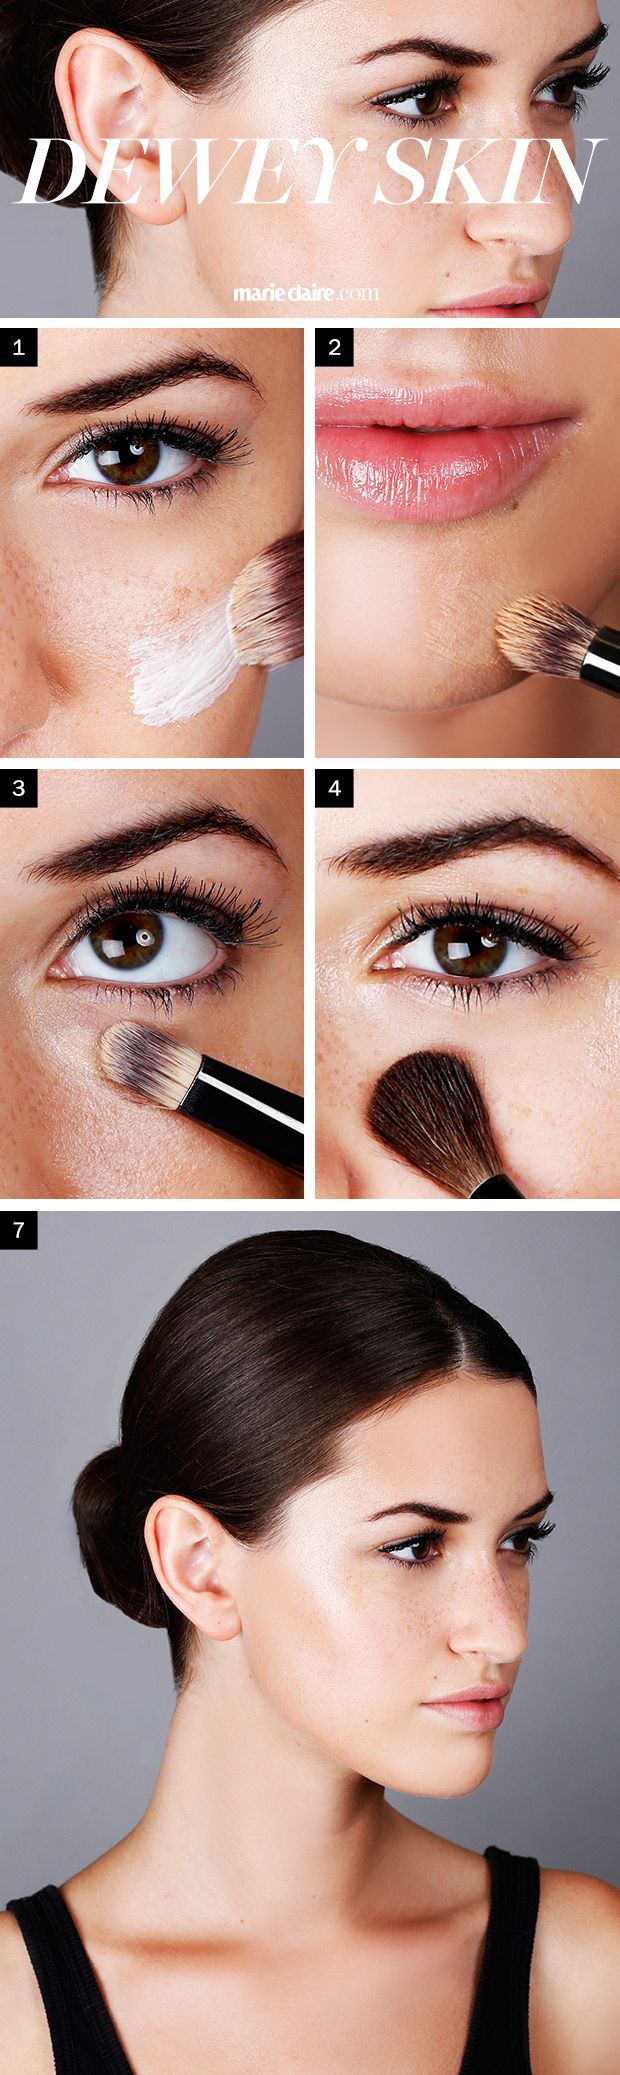 How-to Dewy Skin Makeup Look - How to Get Dewy Skin - Marie Claire